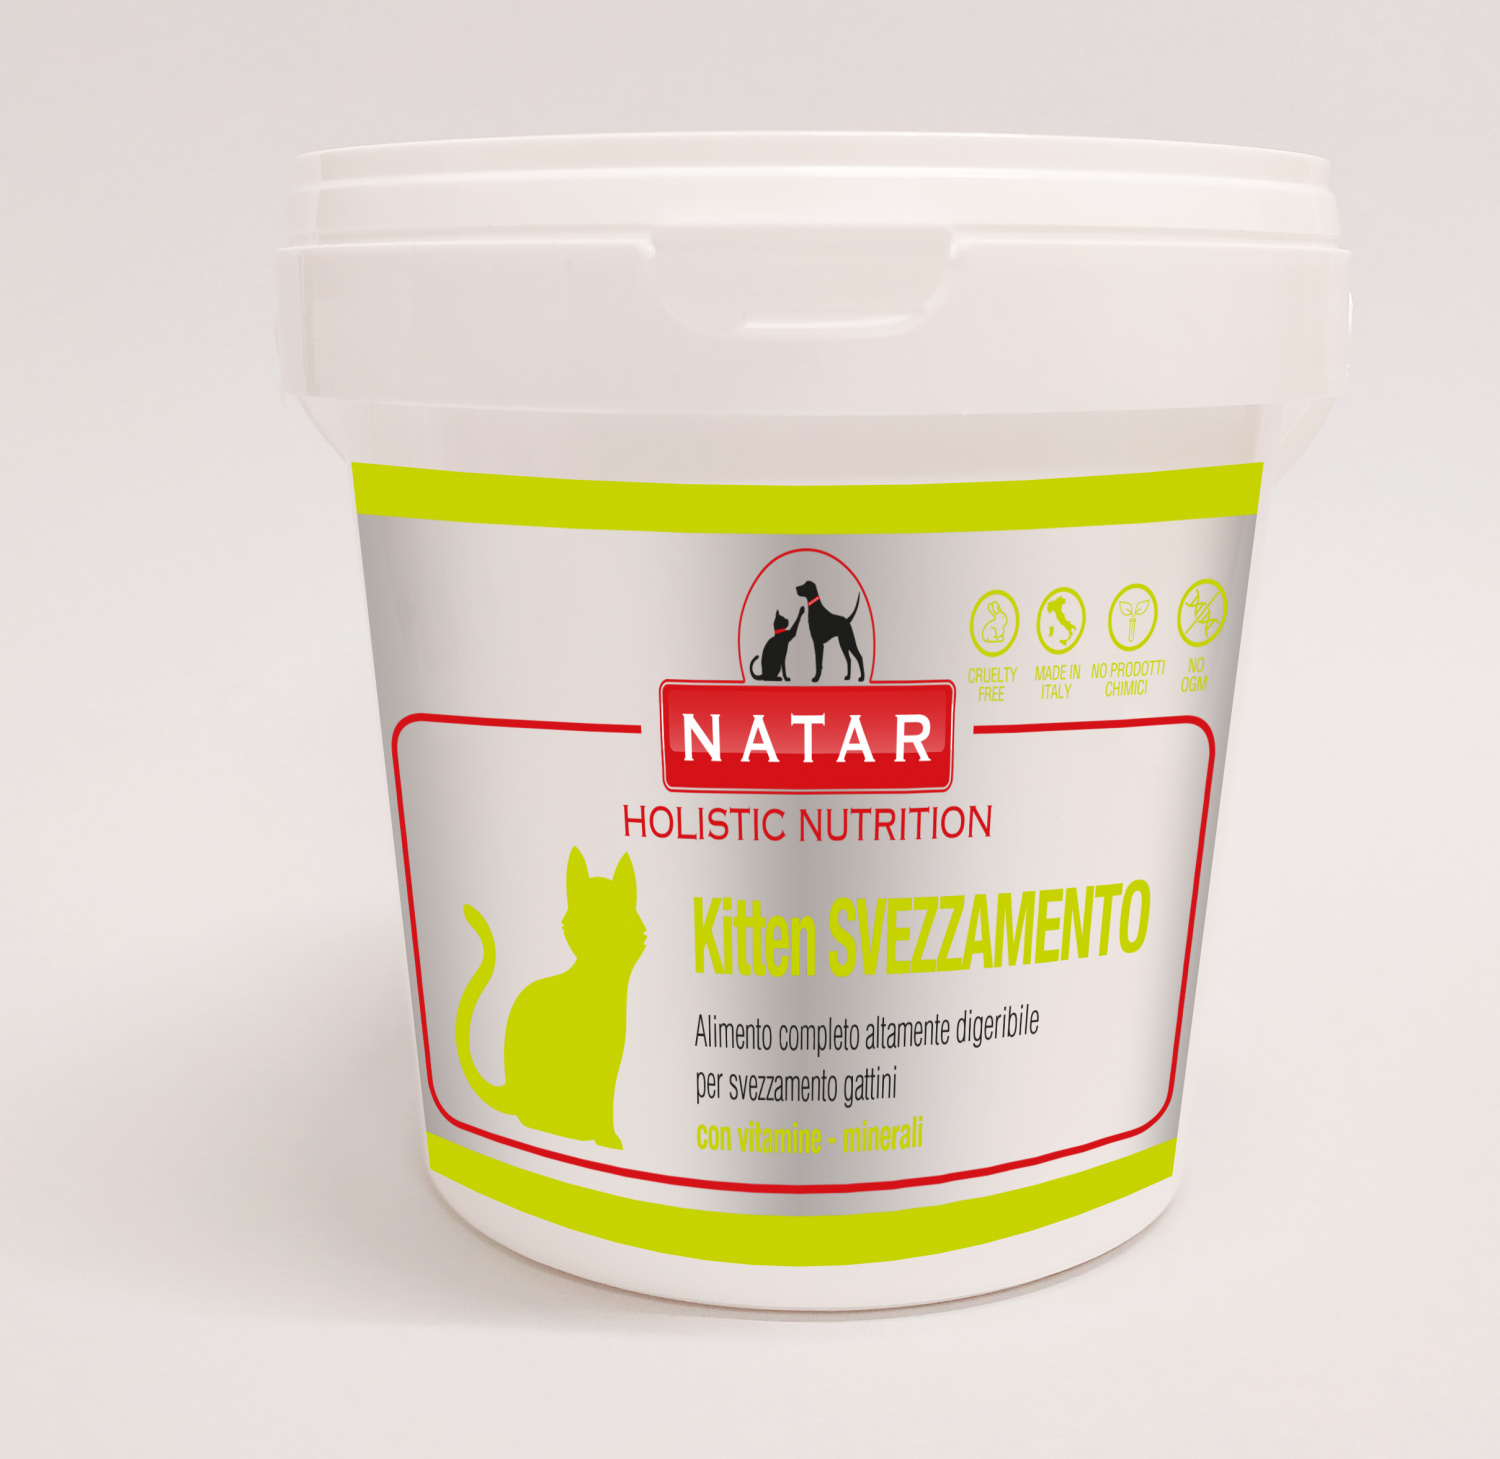 Natar Kitten Weaning, breast milk replacement food for the weaning of kittens